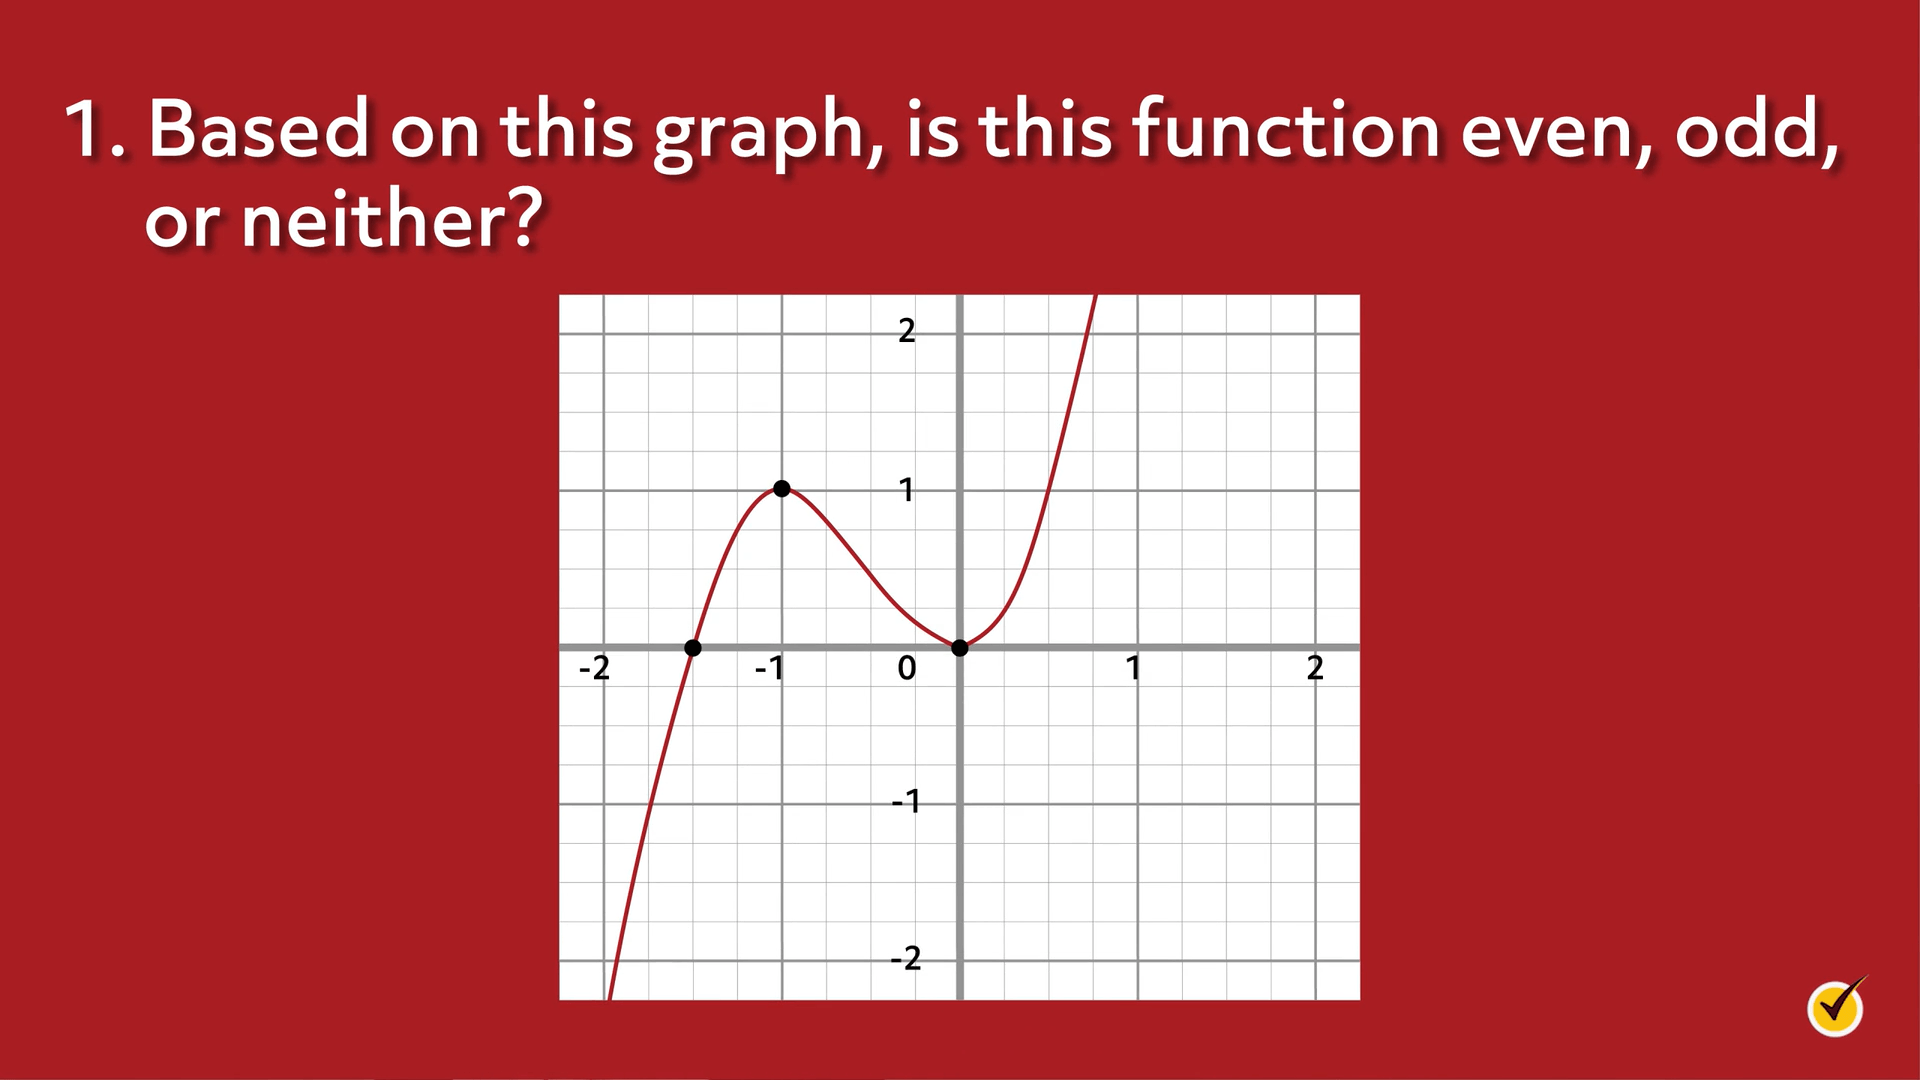 A graph that is not odd or even.